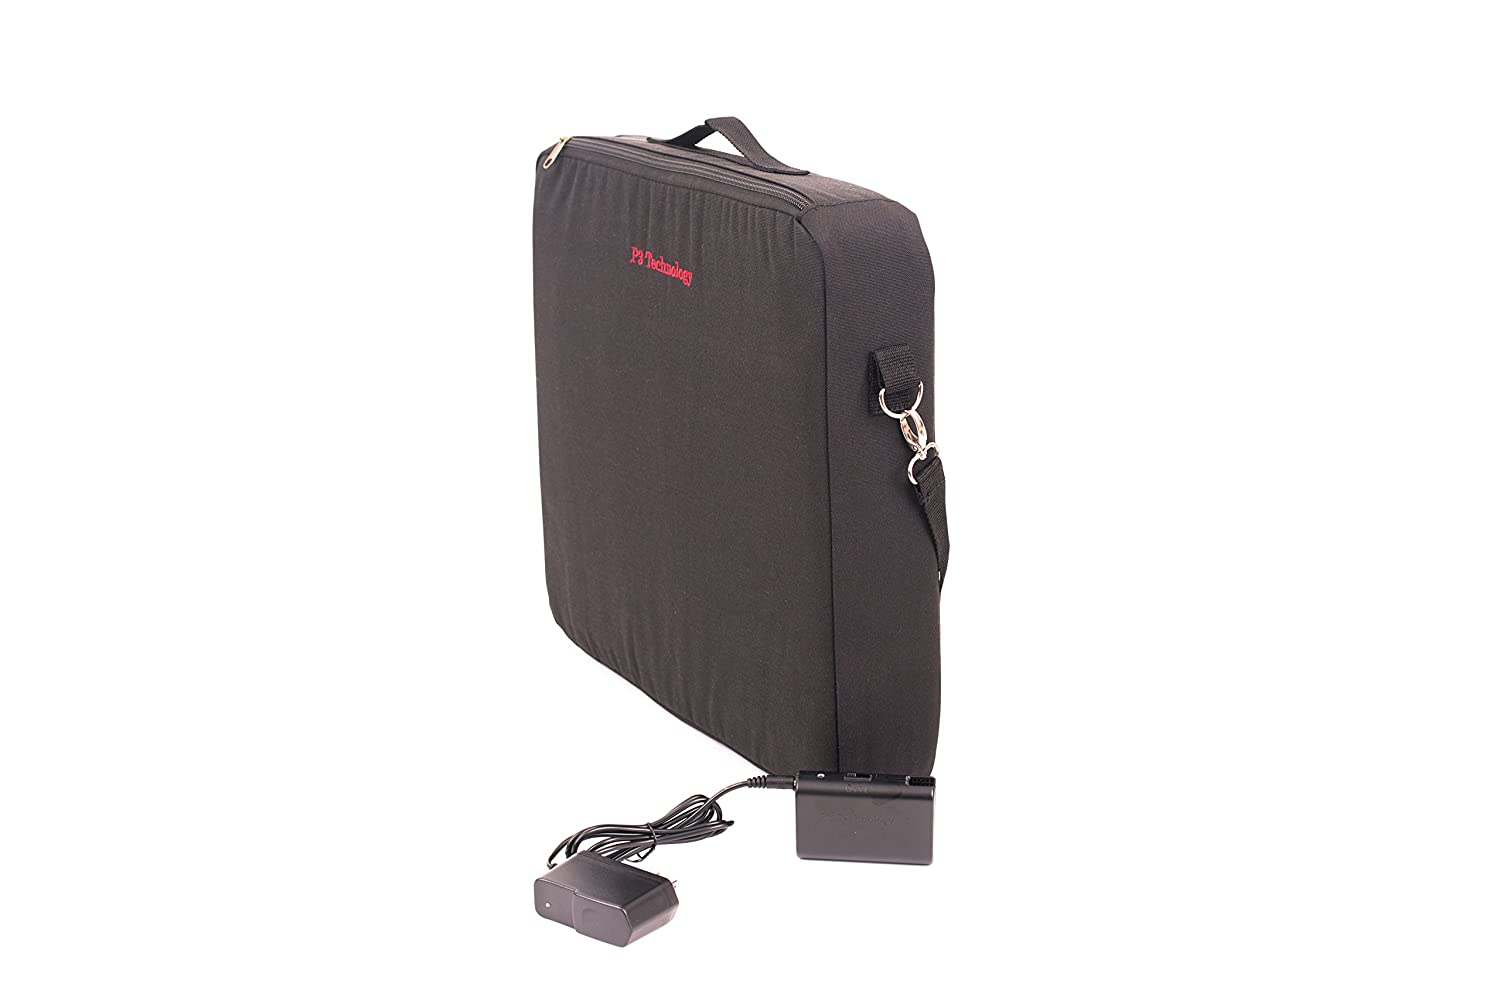 Power Pulse Technology Heated Cushion for The Stadium 6+ Hours Battery Life - Outdoor Sporting and The Car